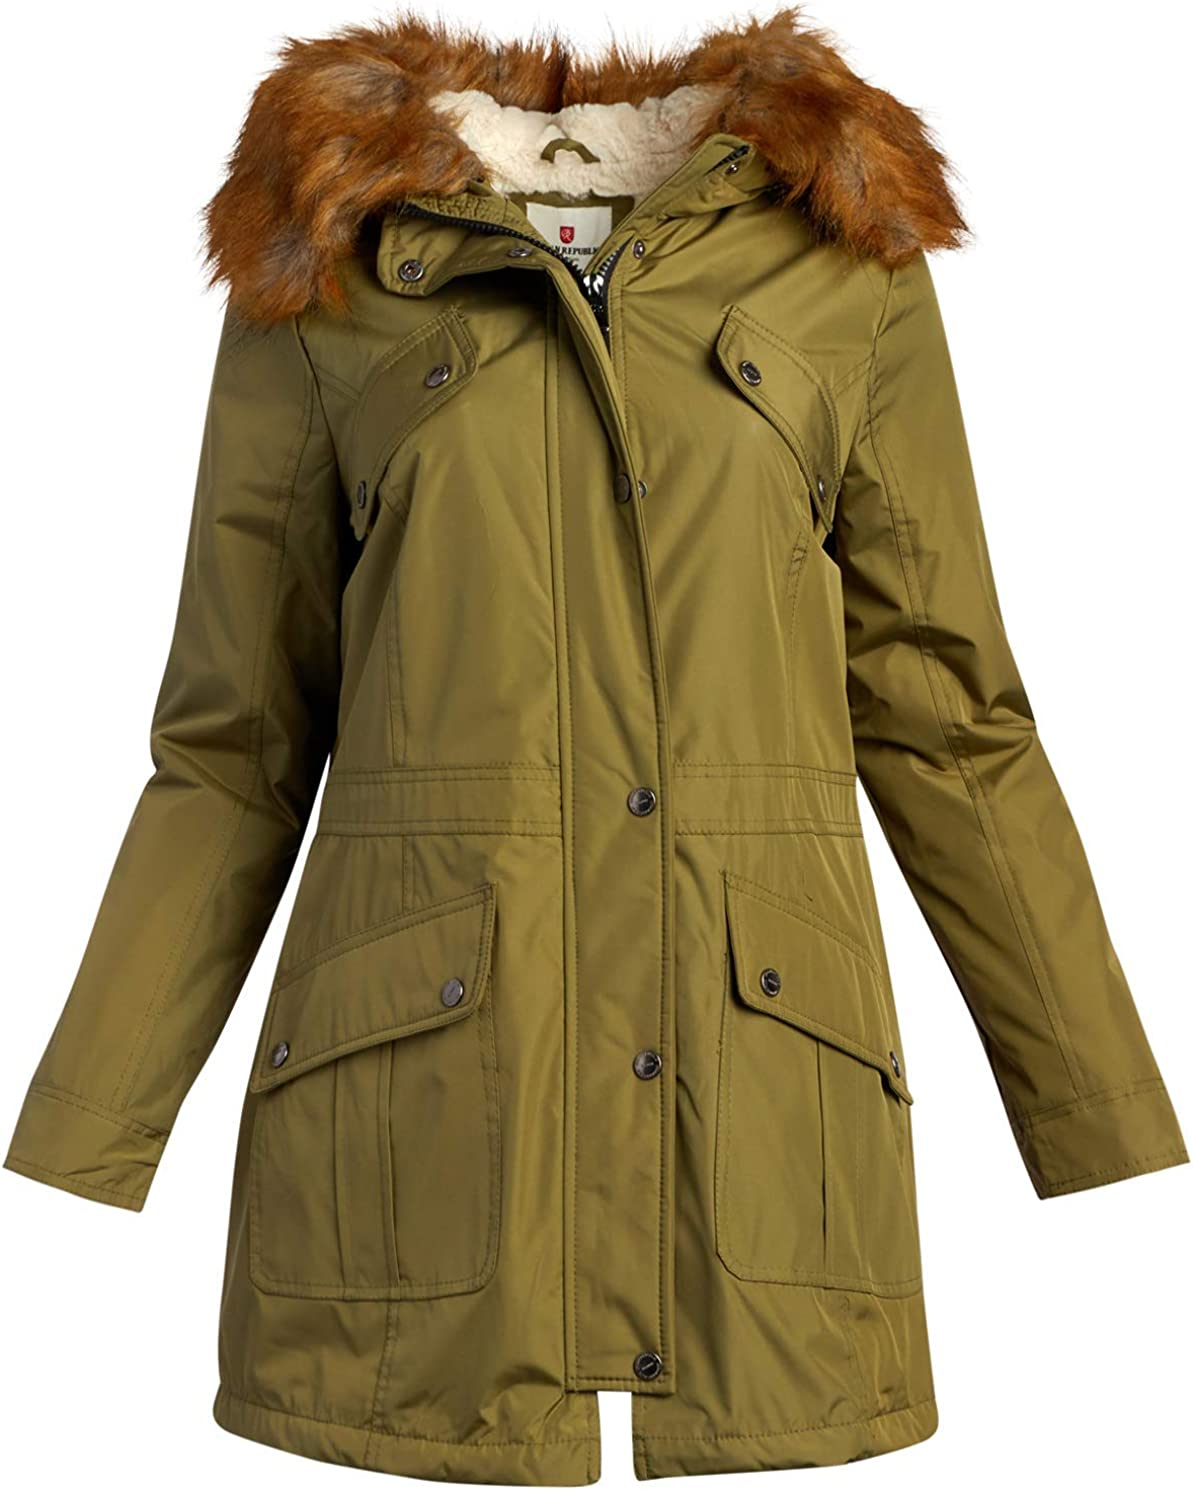 URBAN REPUBLIC Womens Winter Jacket Heavyweight Water Resistant Expedition Faux-Fur Lined Parka Jacket